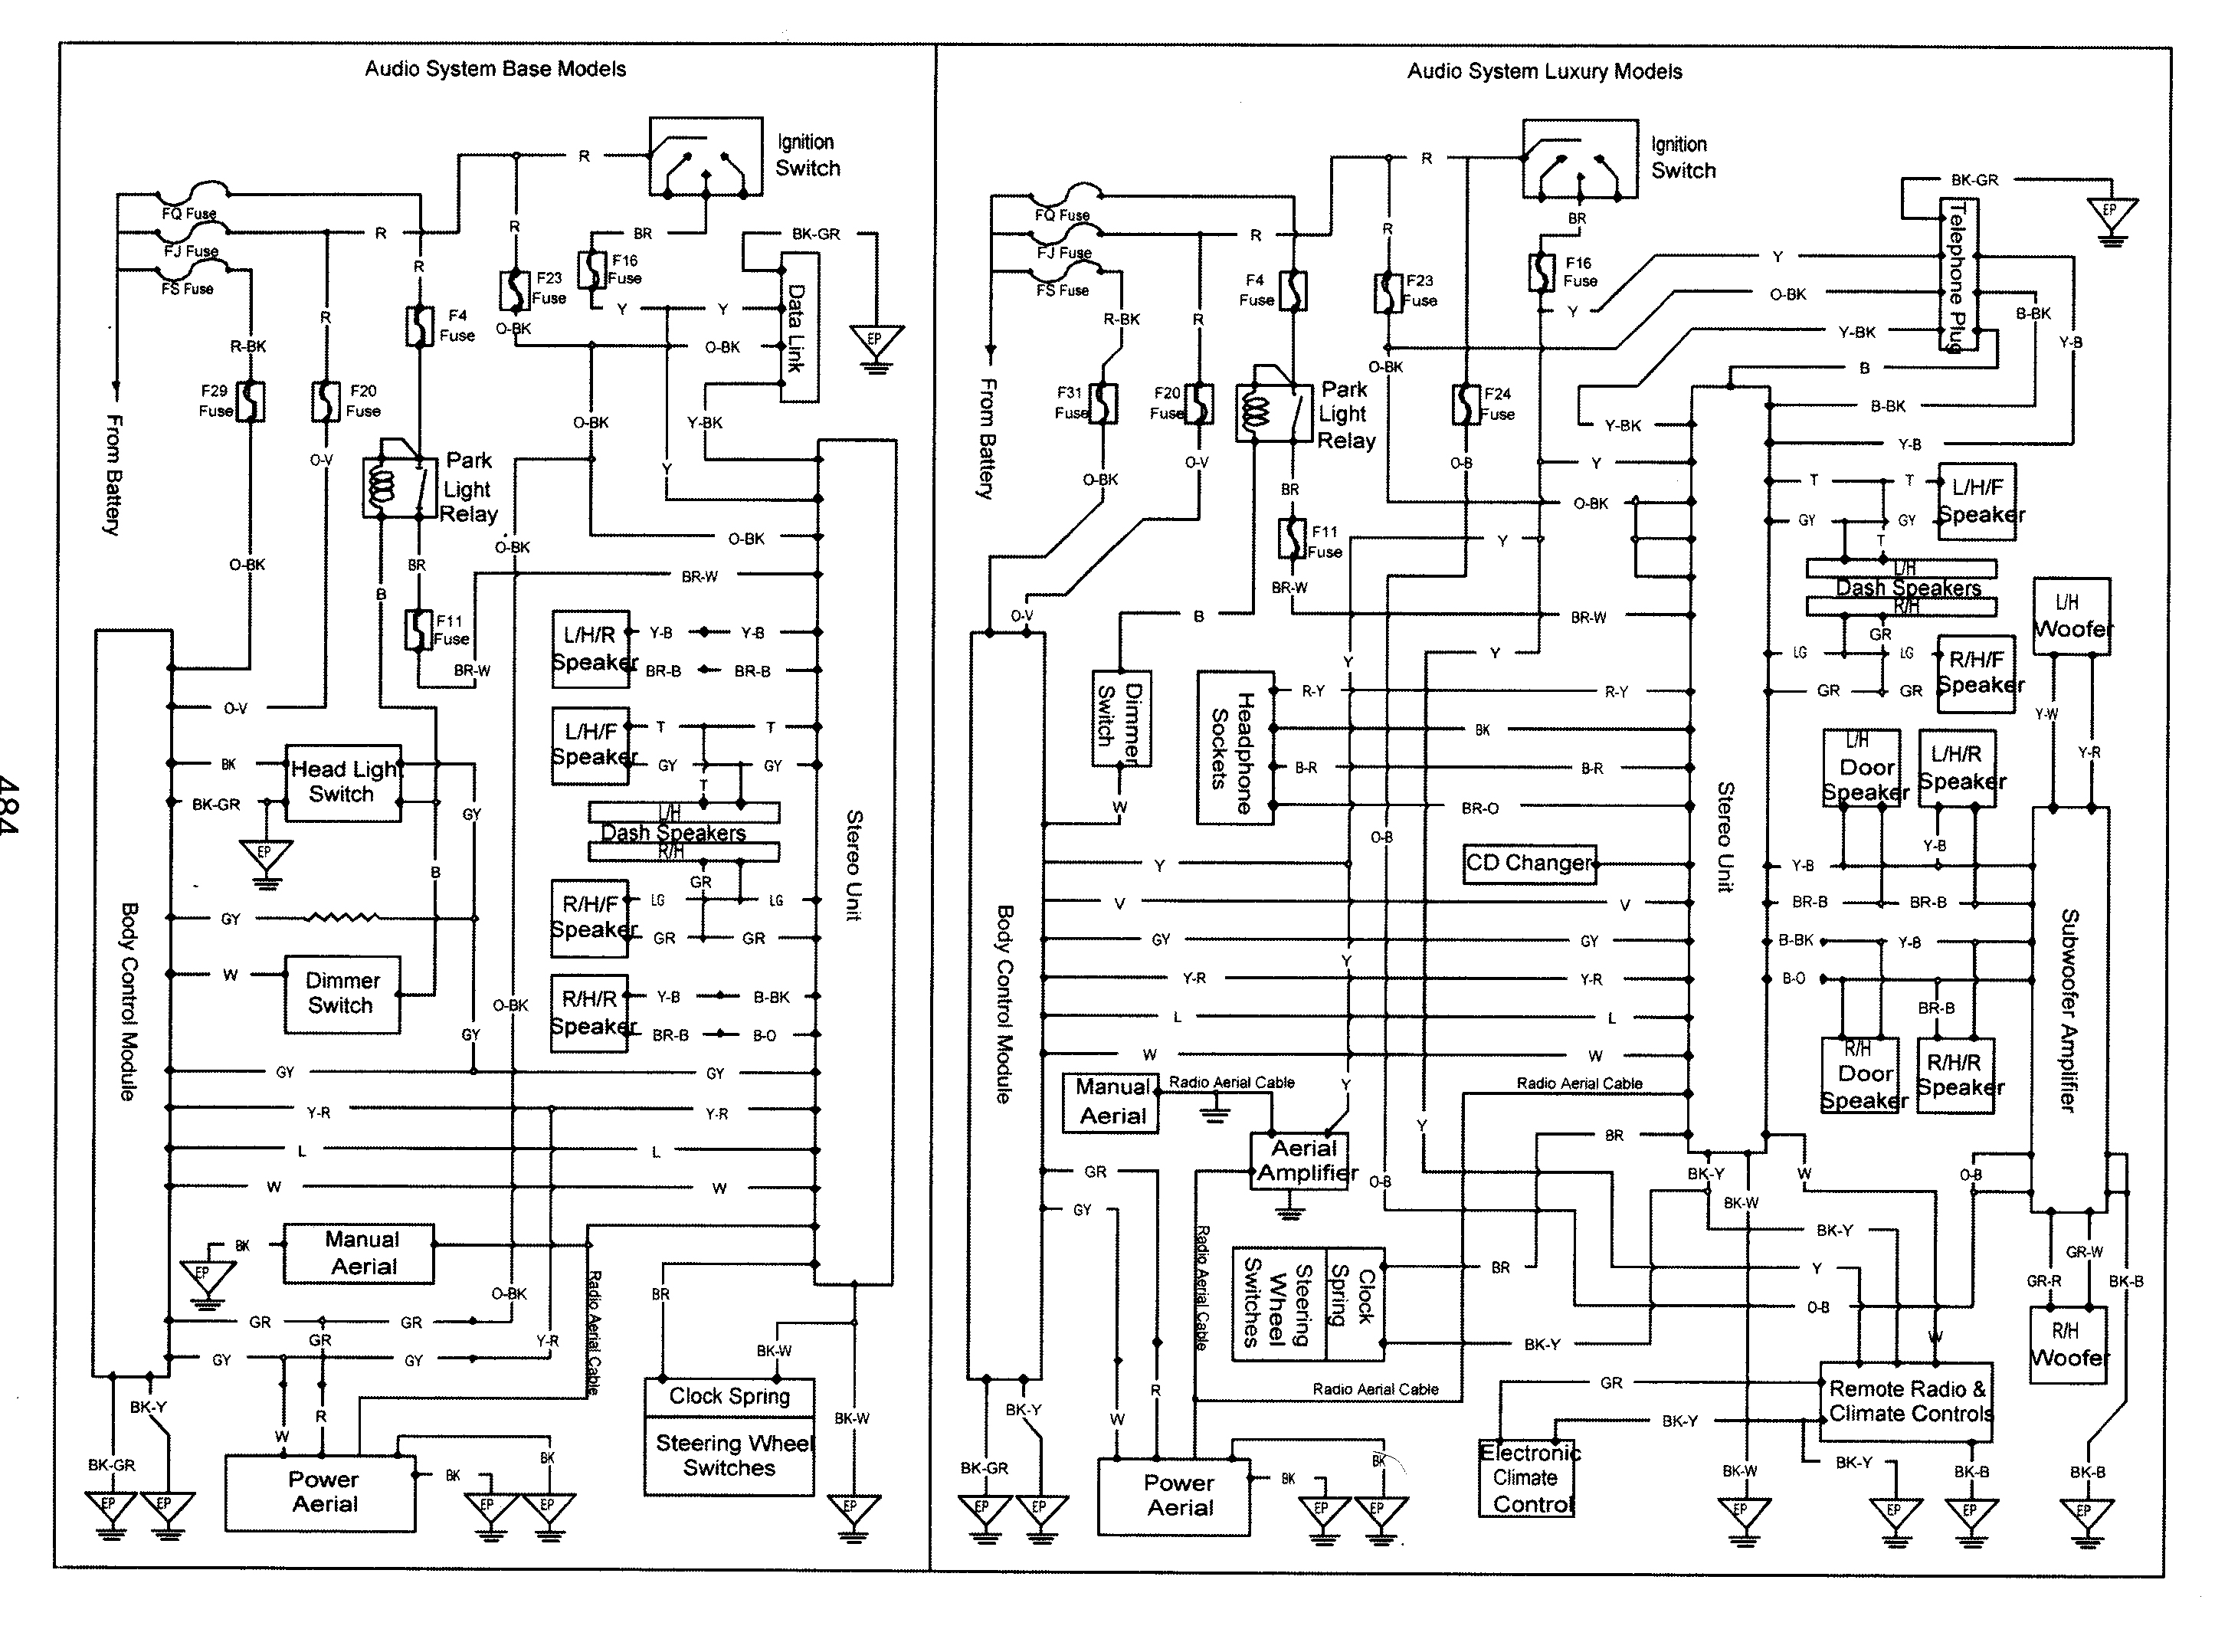 Vy Commodore Stereo Wiring Diagram Free 39 Images Vr Colours Vz Efcaviation Com Img 009resized6652c496